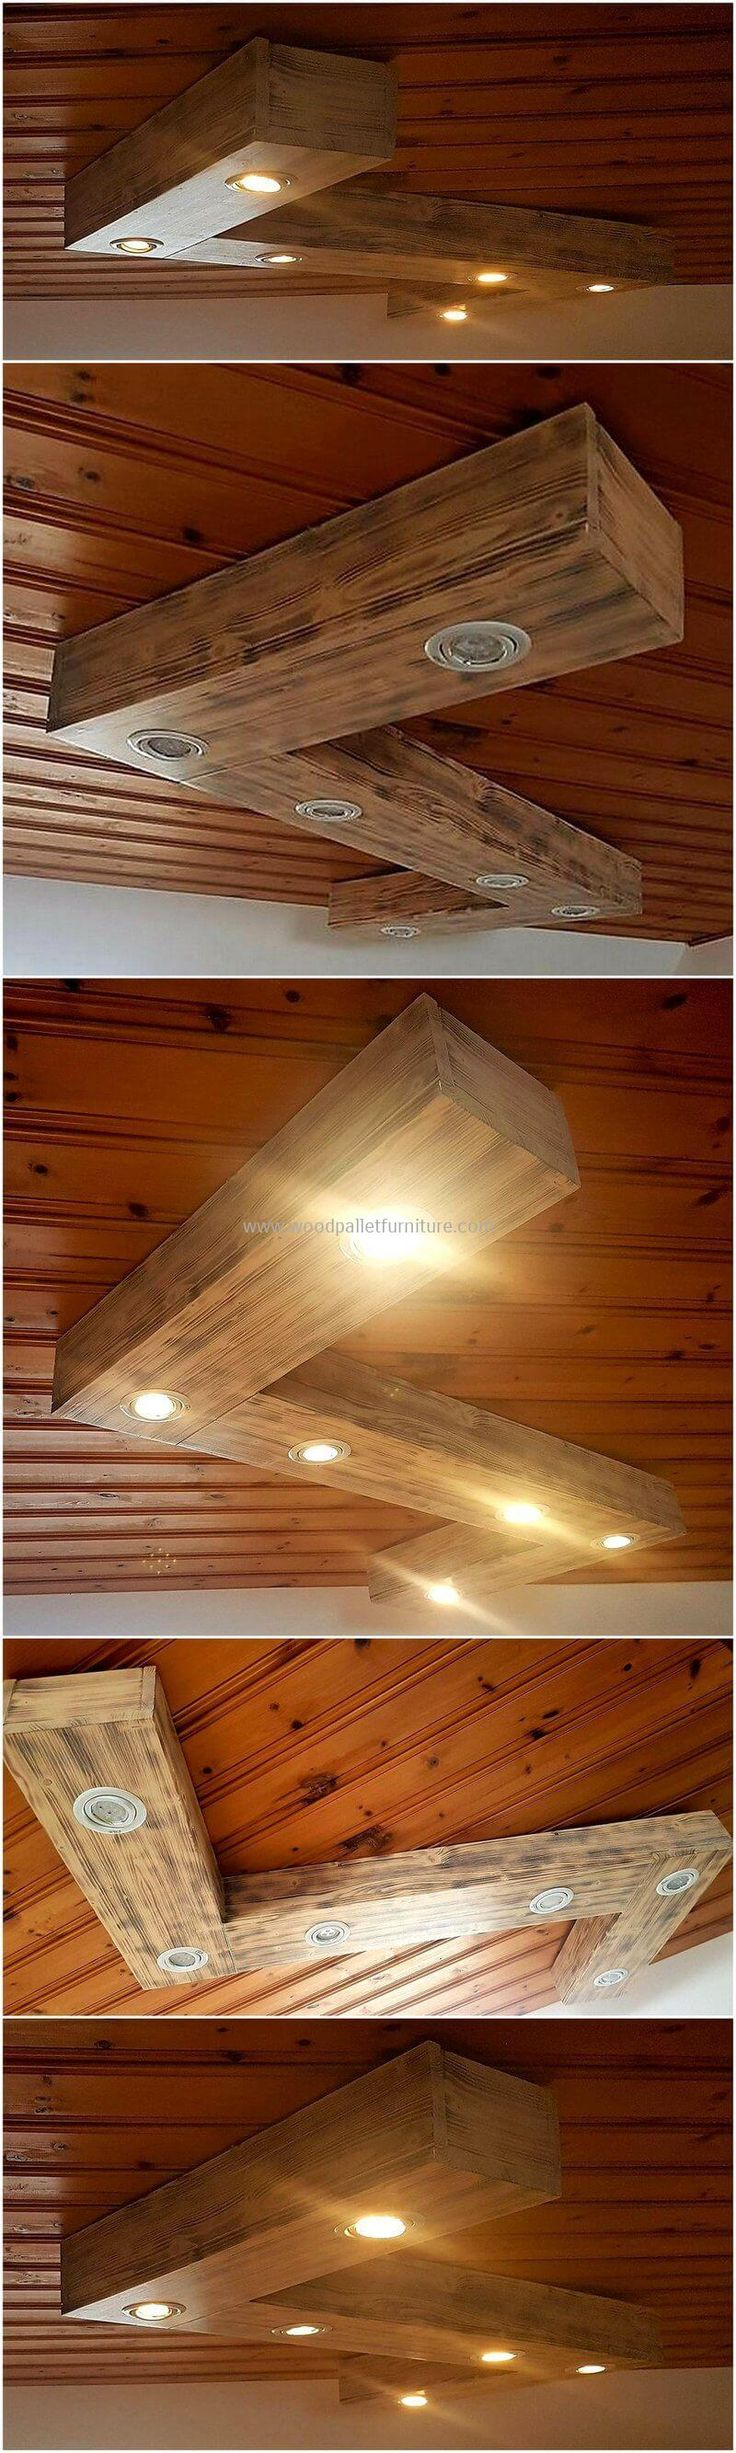 Everyone desires to decorate his room, but you are looking for something exceptional than a simple wooden furniture then, craft this pallet LED roof hanger lamp for your room. This is not only a different wooden product but also turning the atmosphere of this room to glow and breathe. This attractive structure is entirely crafted with useless wood pallets to provide you something best at a cheap price.